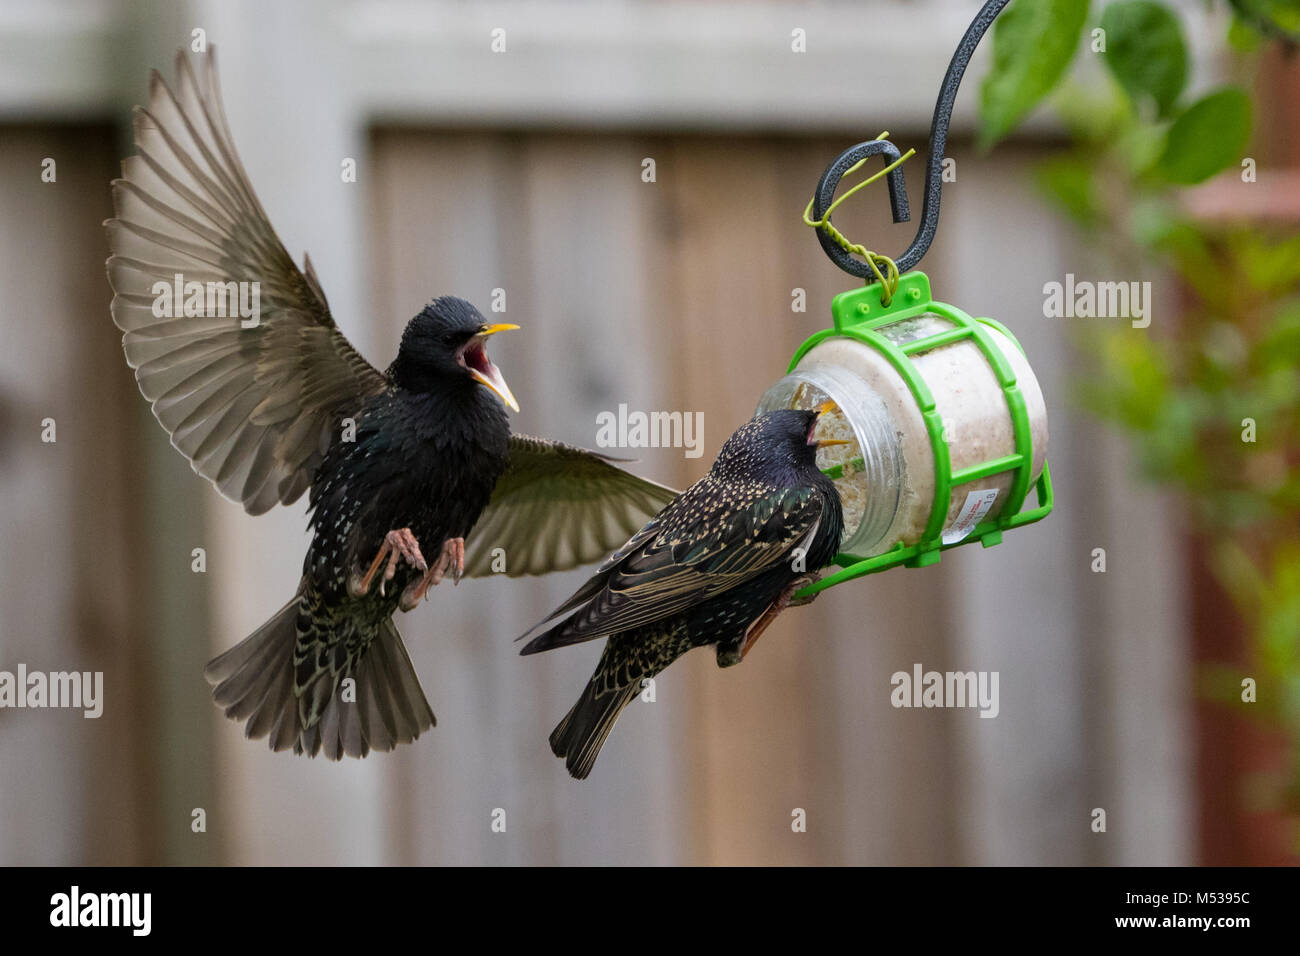 Starlings fighting over food in mid flgiht - Stock Image